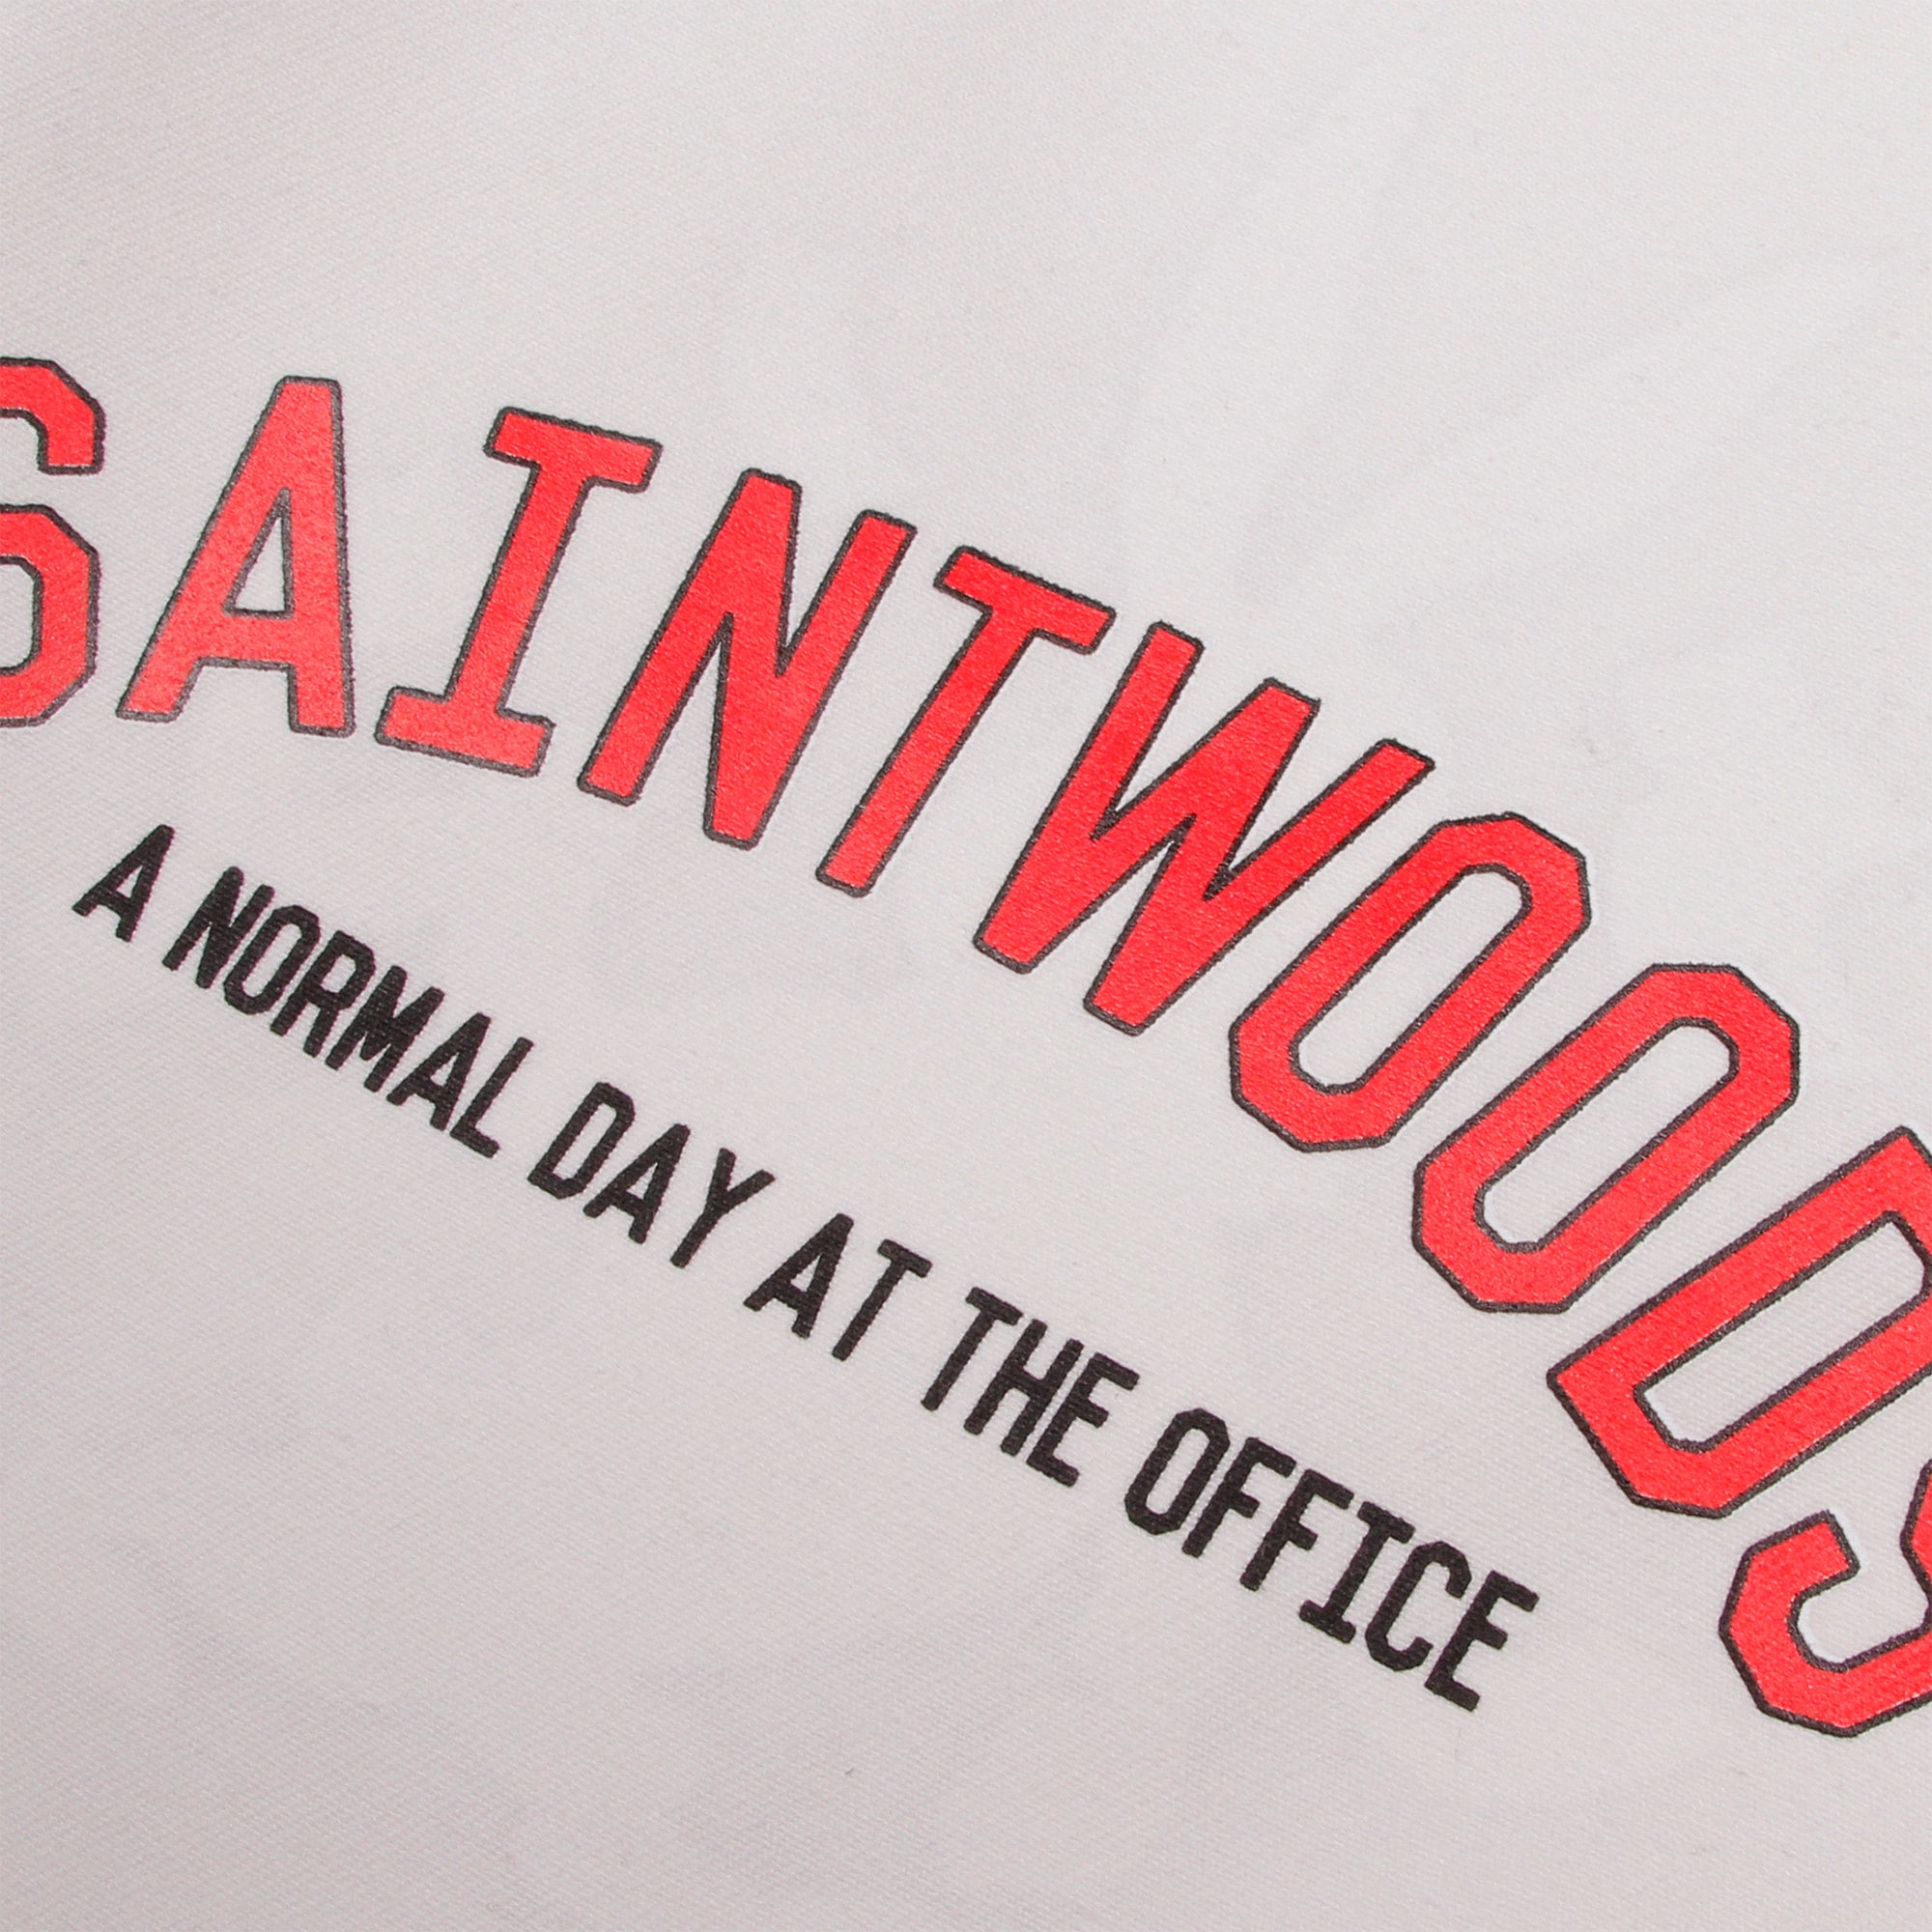 Normal Day Reversible Tote - Bags - Saintwoods